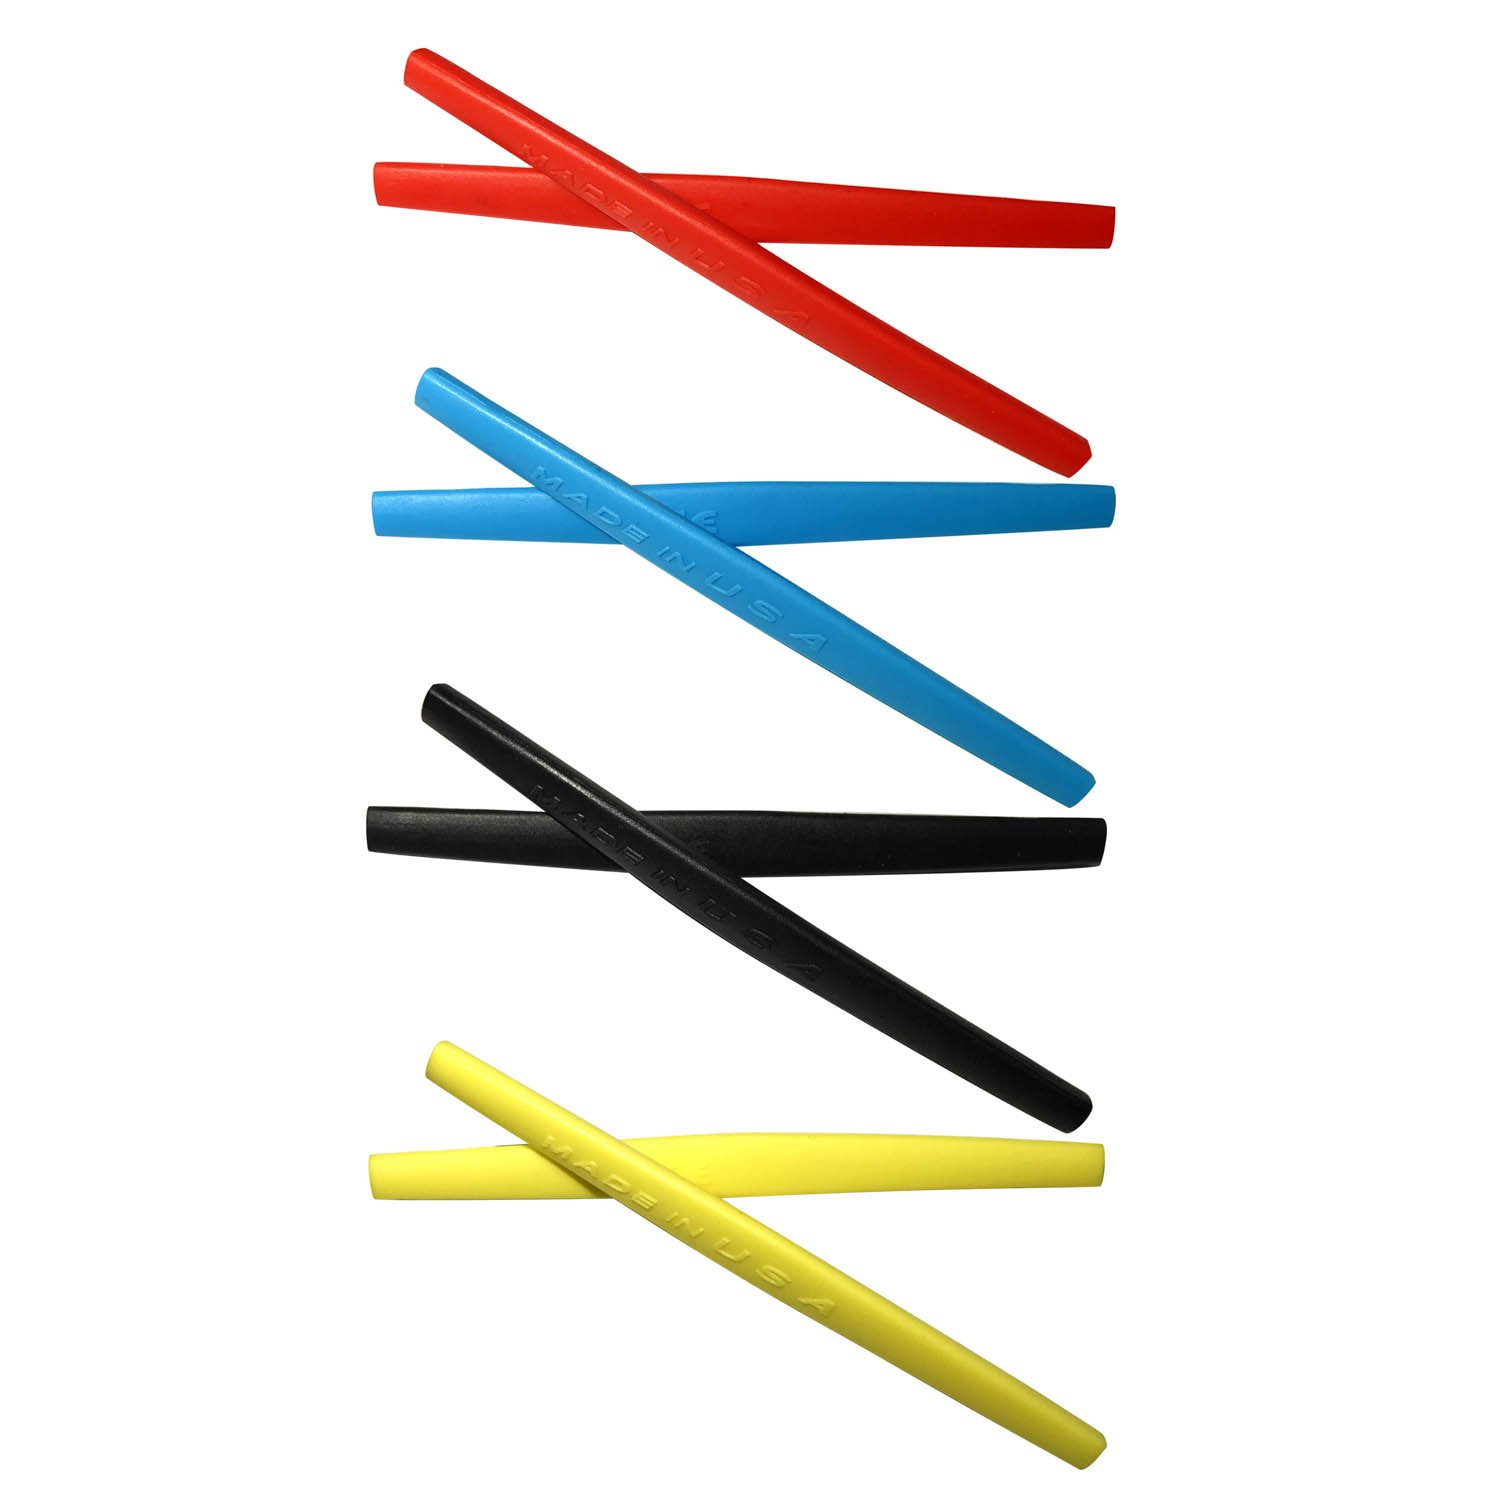 HKUCO Red/Blue/Black/Yellow Replacement Silicone Leg Set For Oakley Square Wire 2.0 Sunglasses Earsocks Rubber Kit